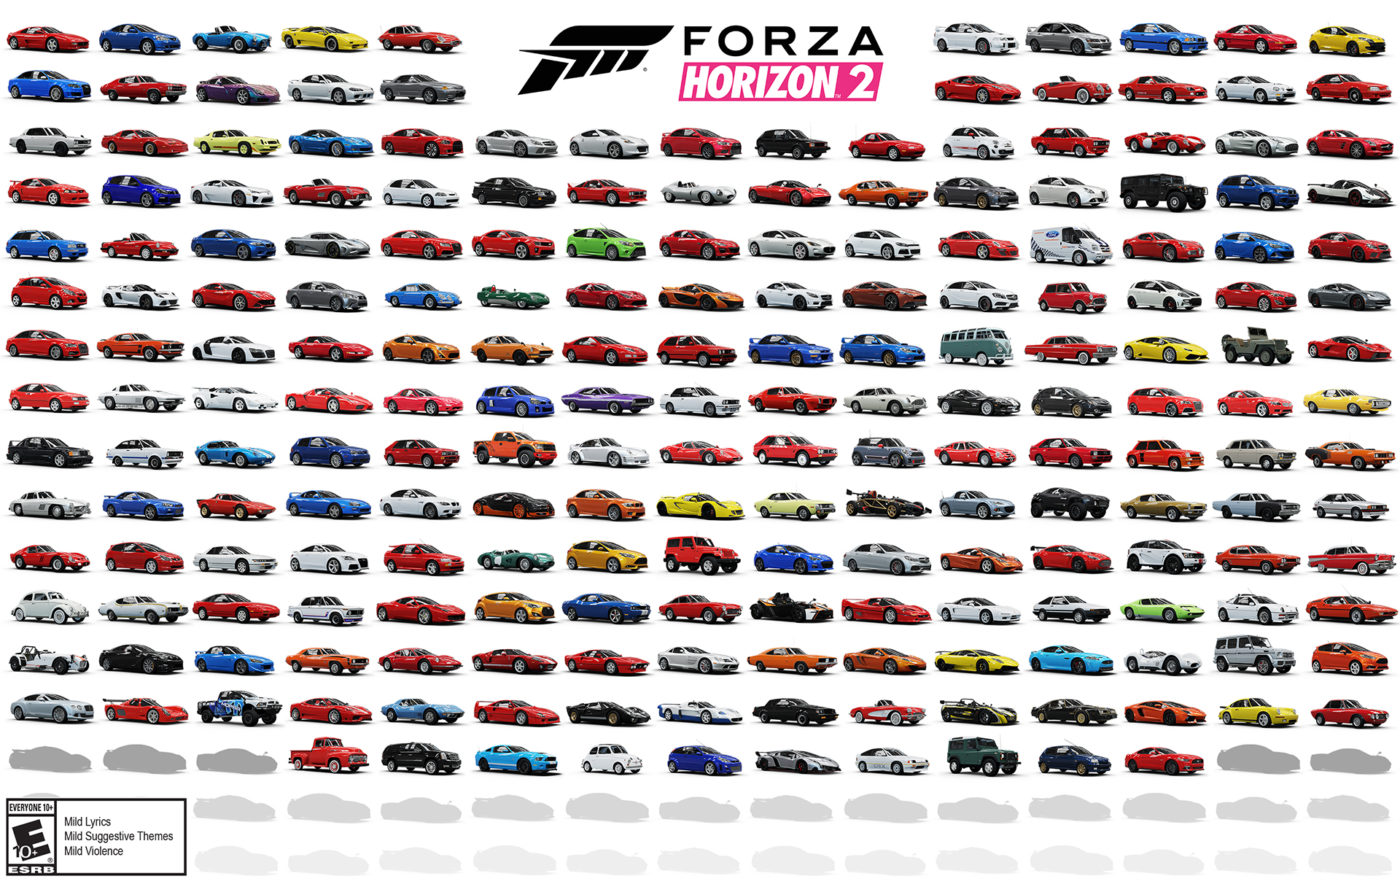 Forza Horizon S Final Car Lineup Boasts Modern And Classic